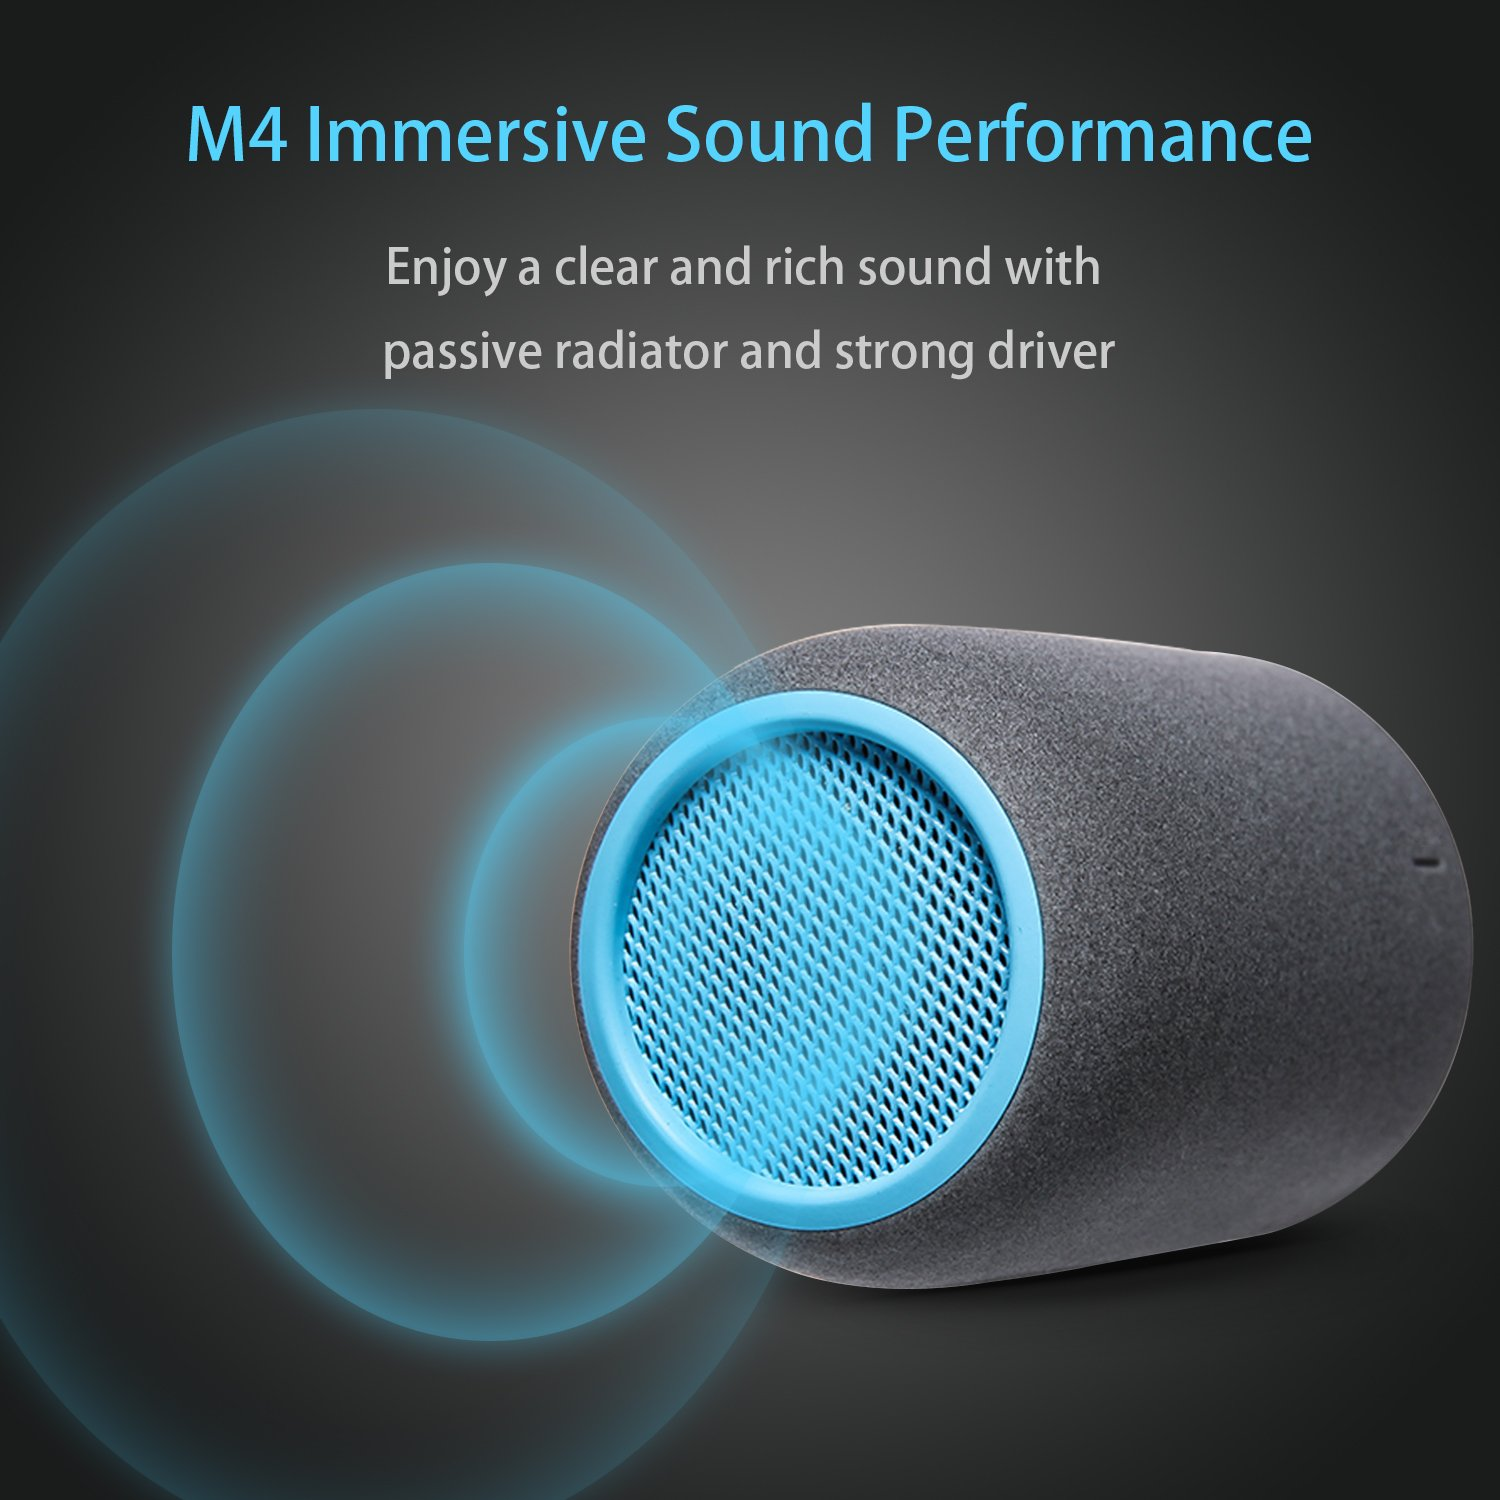 Portable Speakers, ZENBRE M4 Wireless Bluetooth Speakers for Laptop, Tablet, iPhone, Computer Speaker with Enhanced Bass Resonator (Blue) by ZENBRE (Image #4)